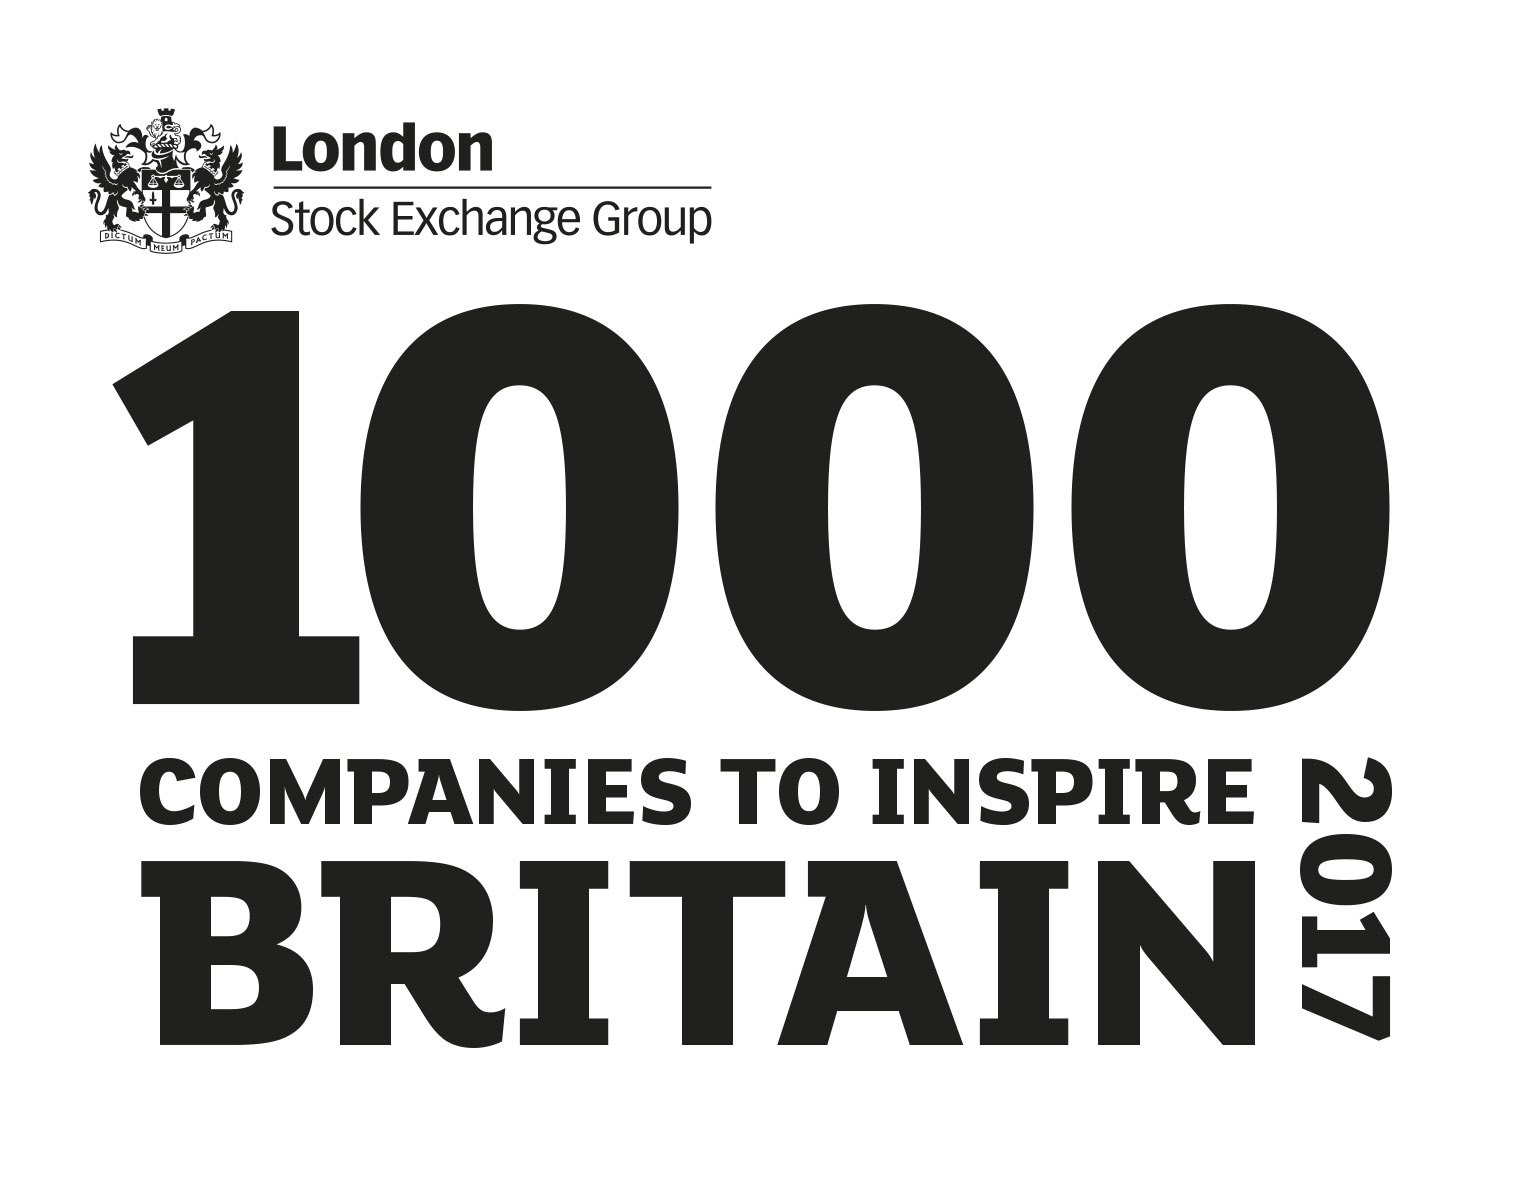 1000 Companies to Inspire 2017